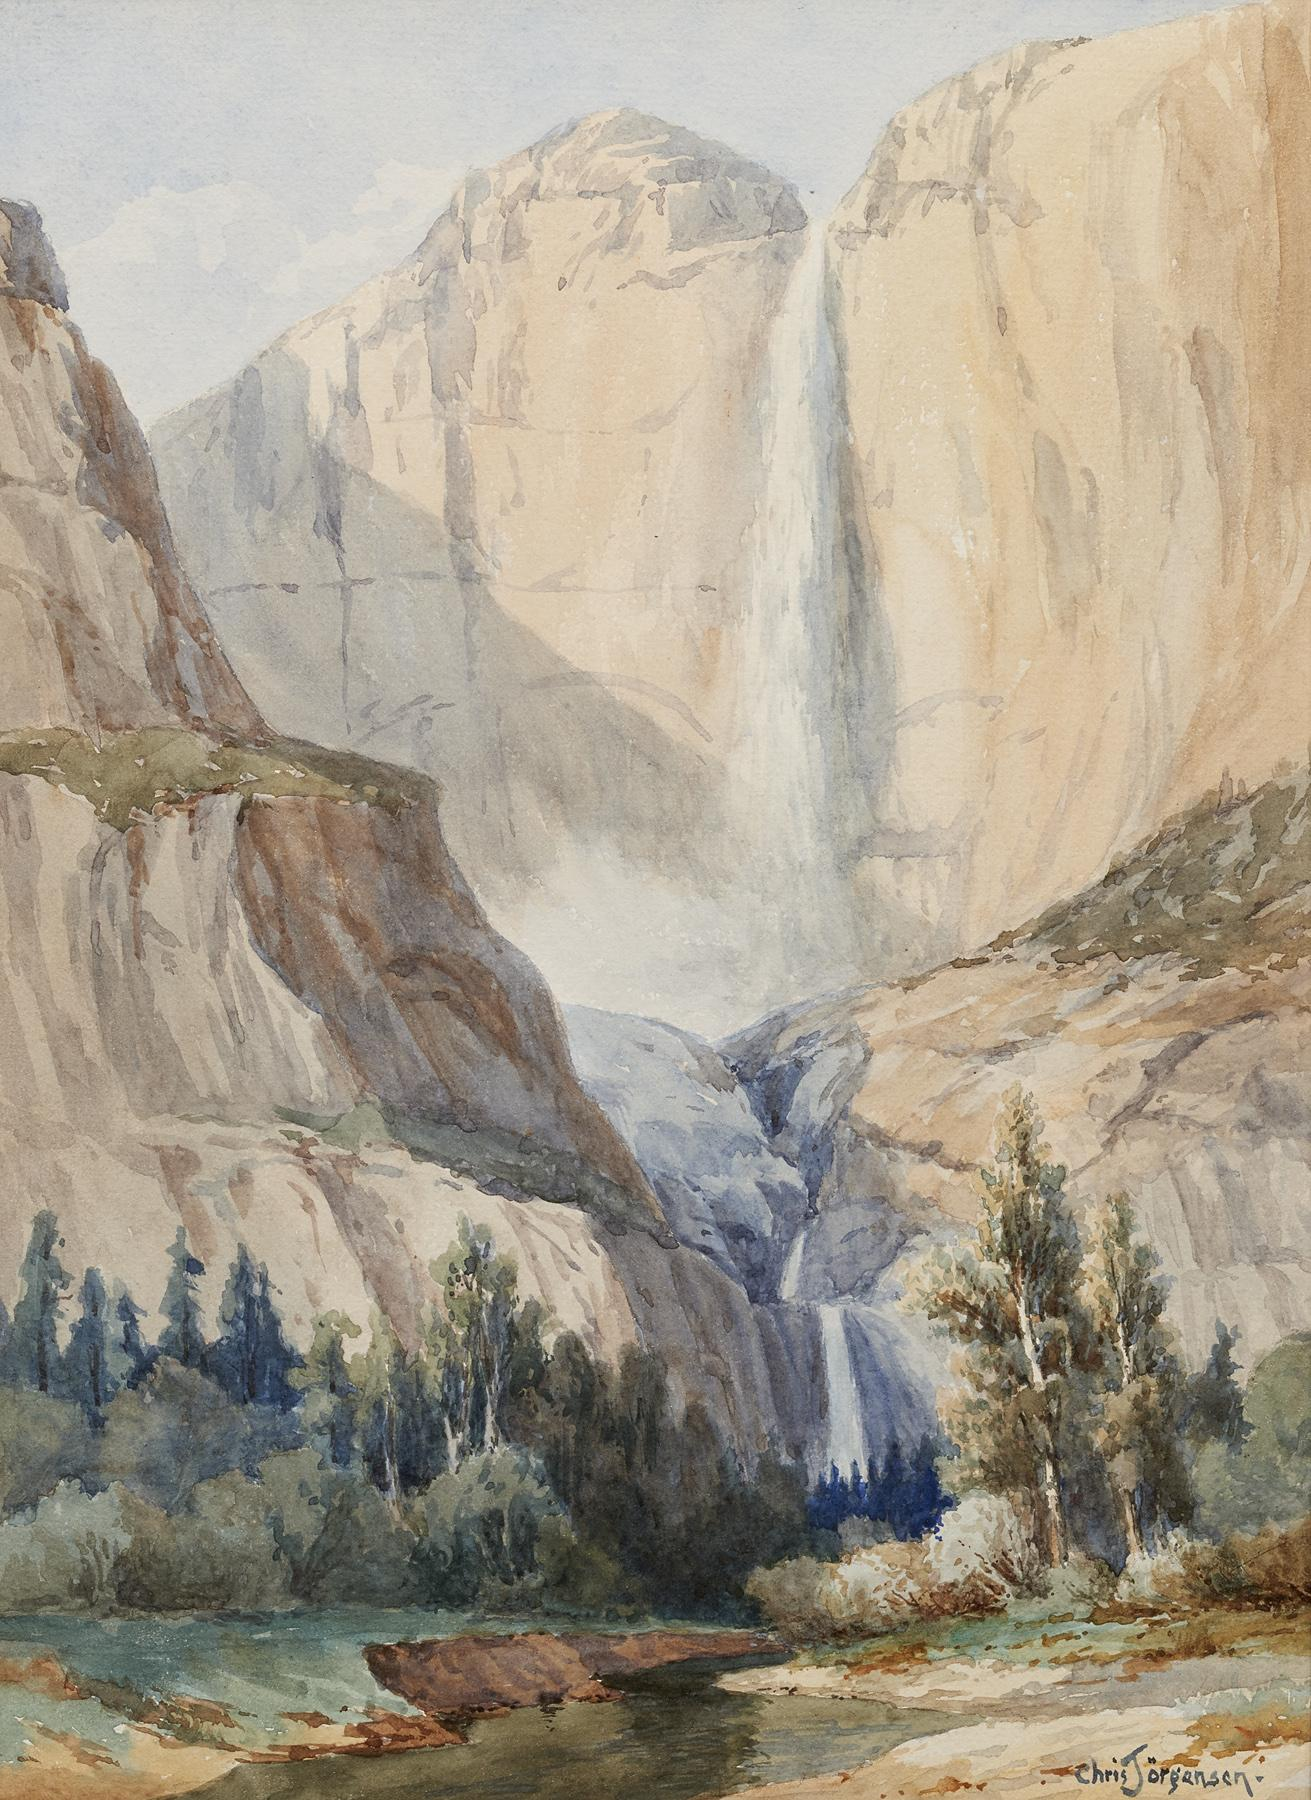 Chris Jorgensen, Yosemite Falls, watercolors on paper, Collection of Roger and Kathy Carter